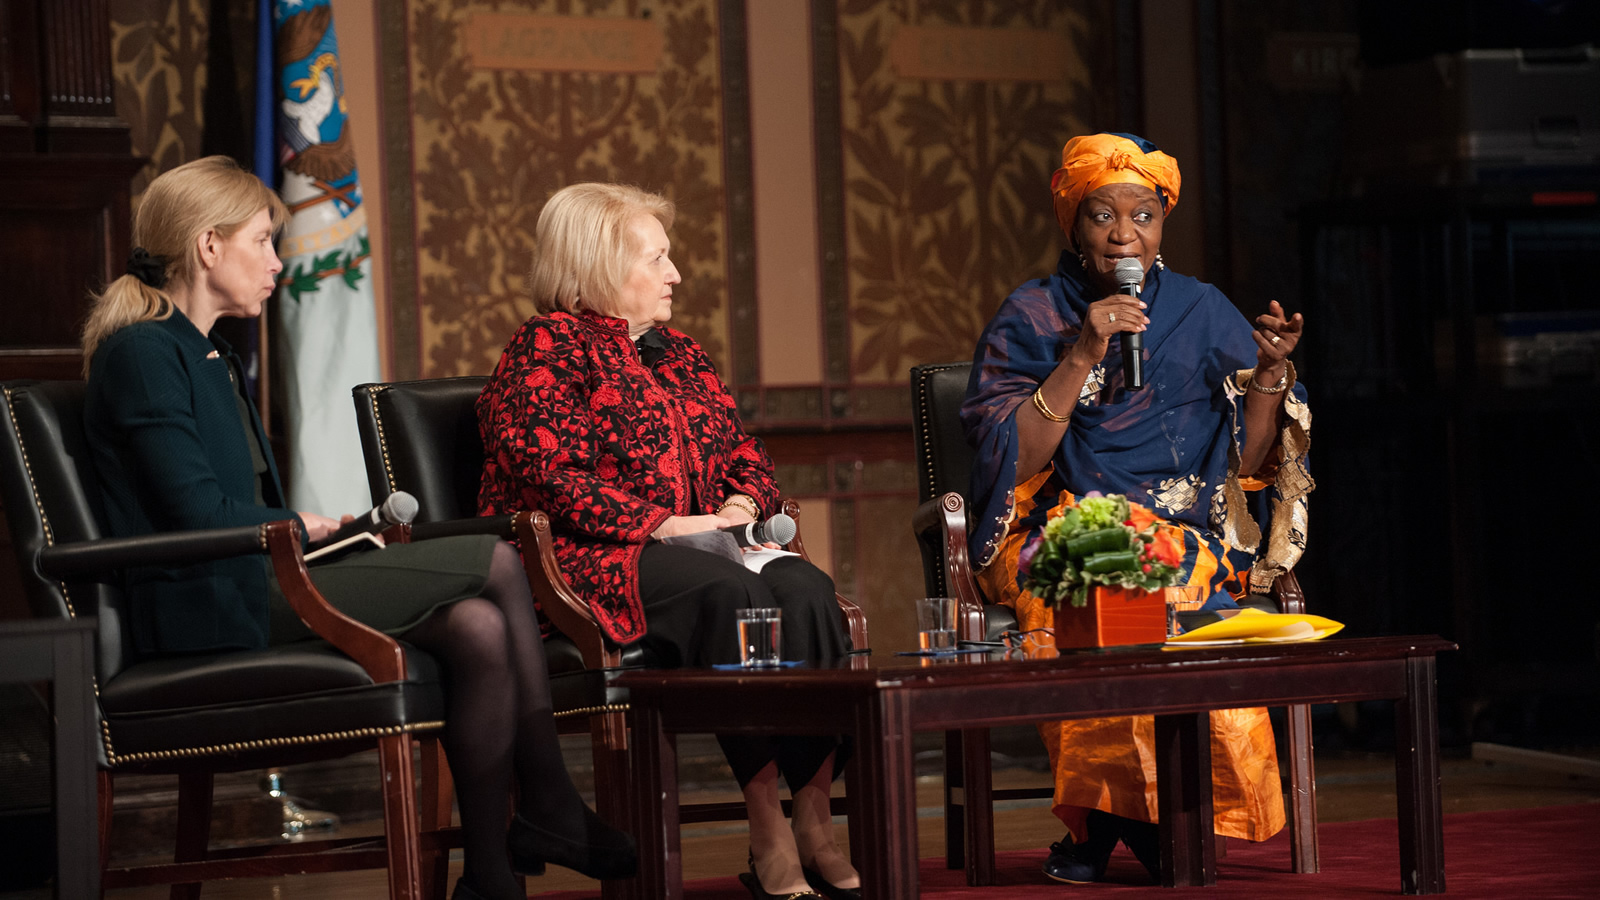 Zainab Hawa Bangura speaks as part of a panel discussion with Alissa Rubin and Melanne Verveer.